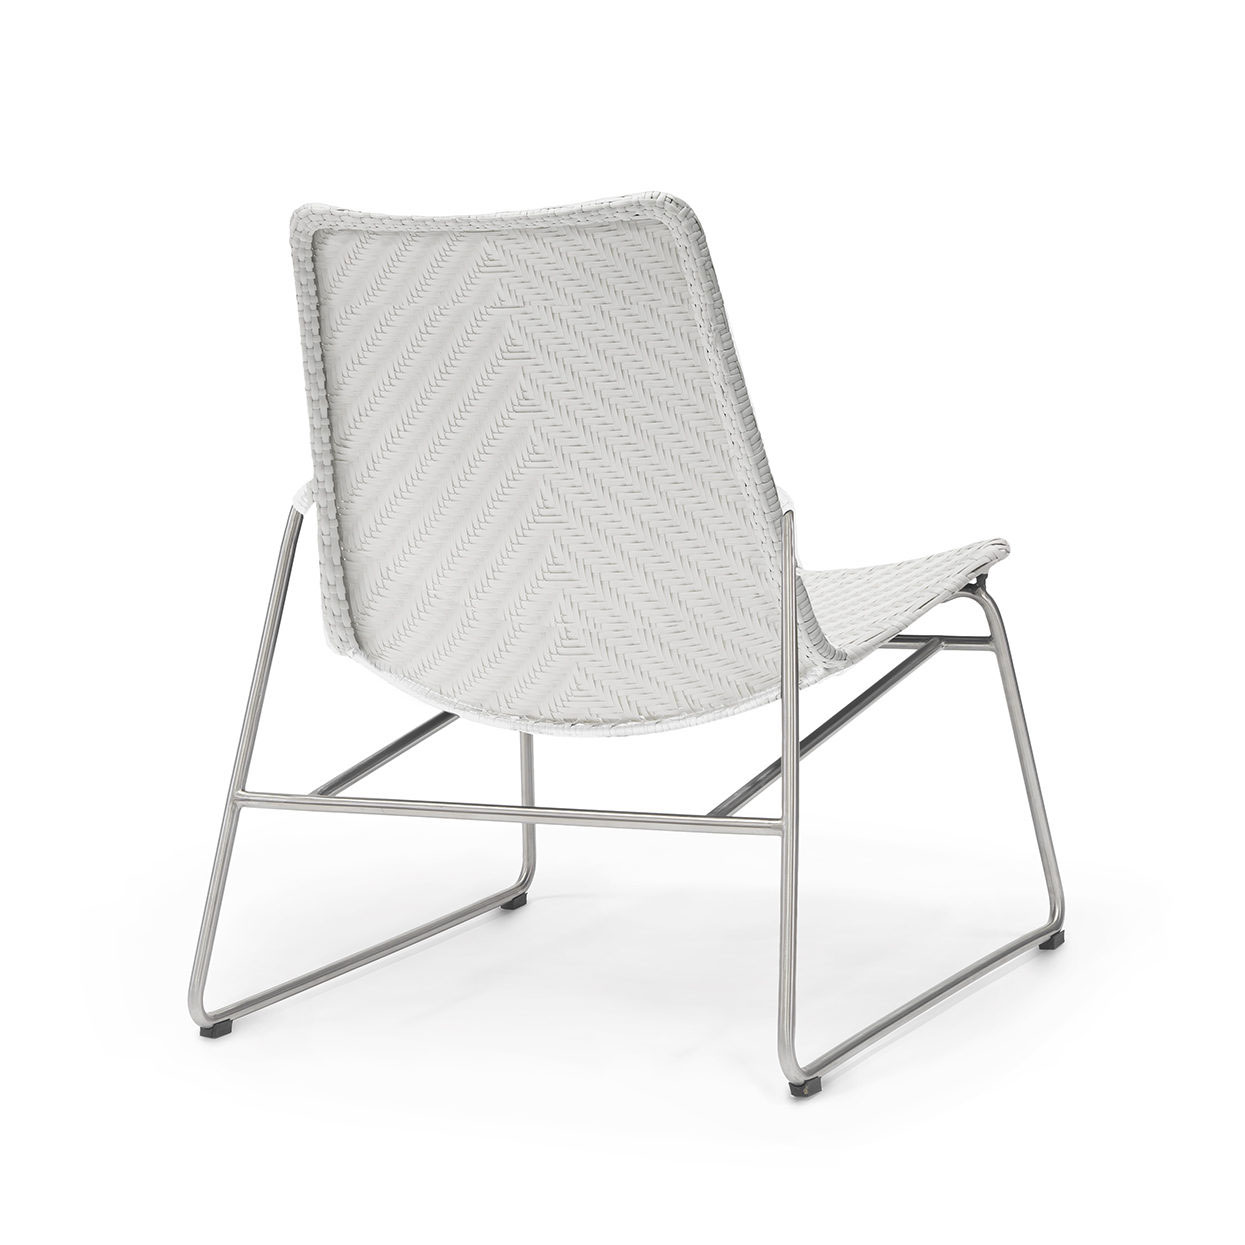 Bergman outdoor occasional chair white 1